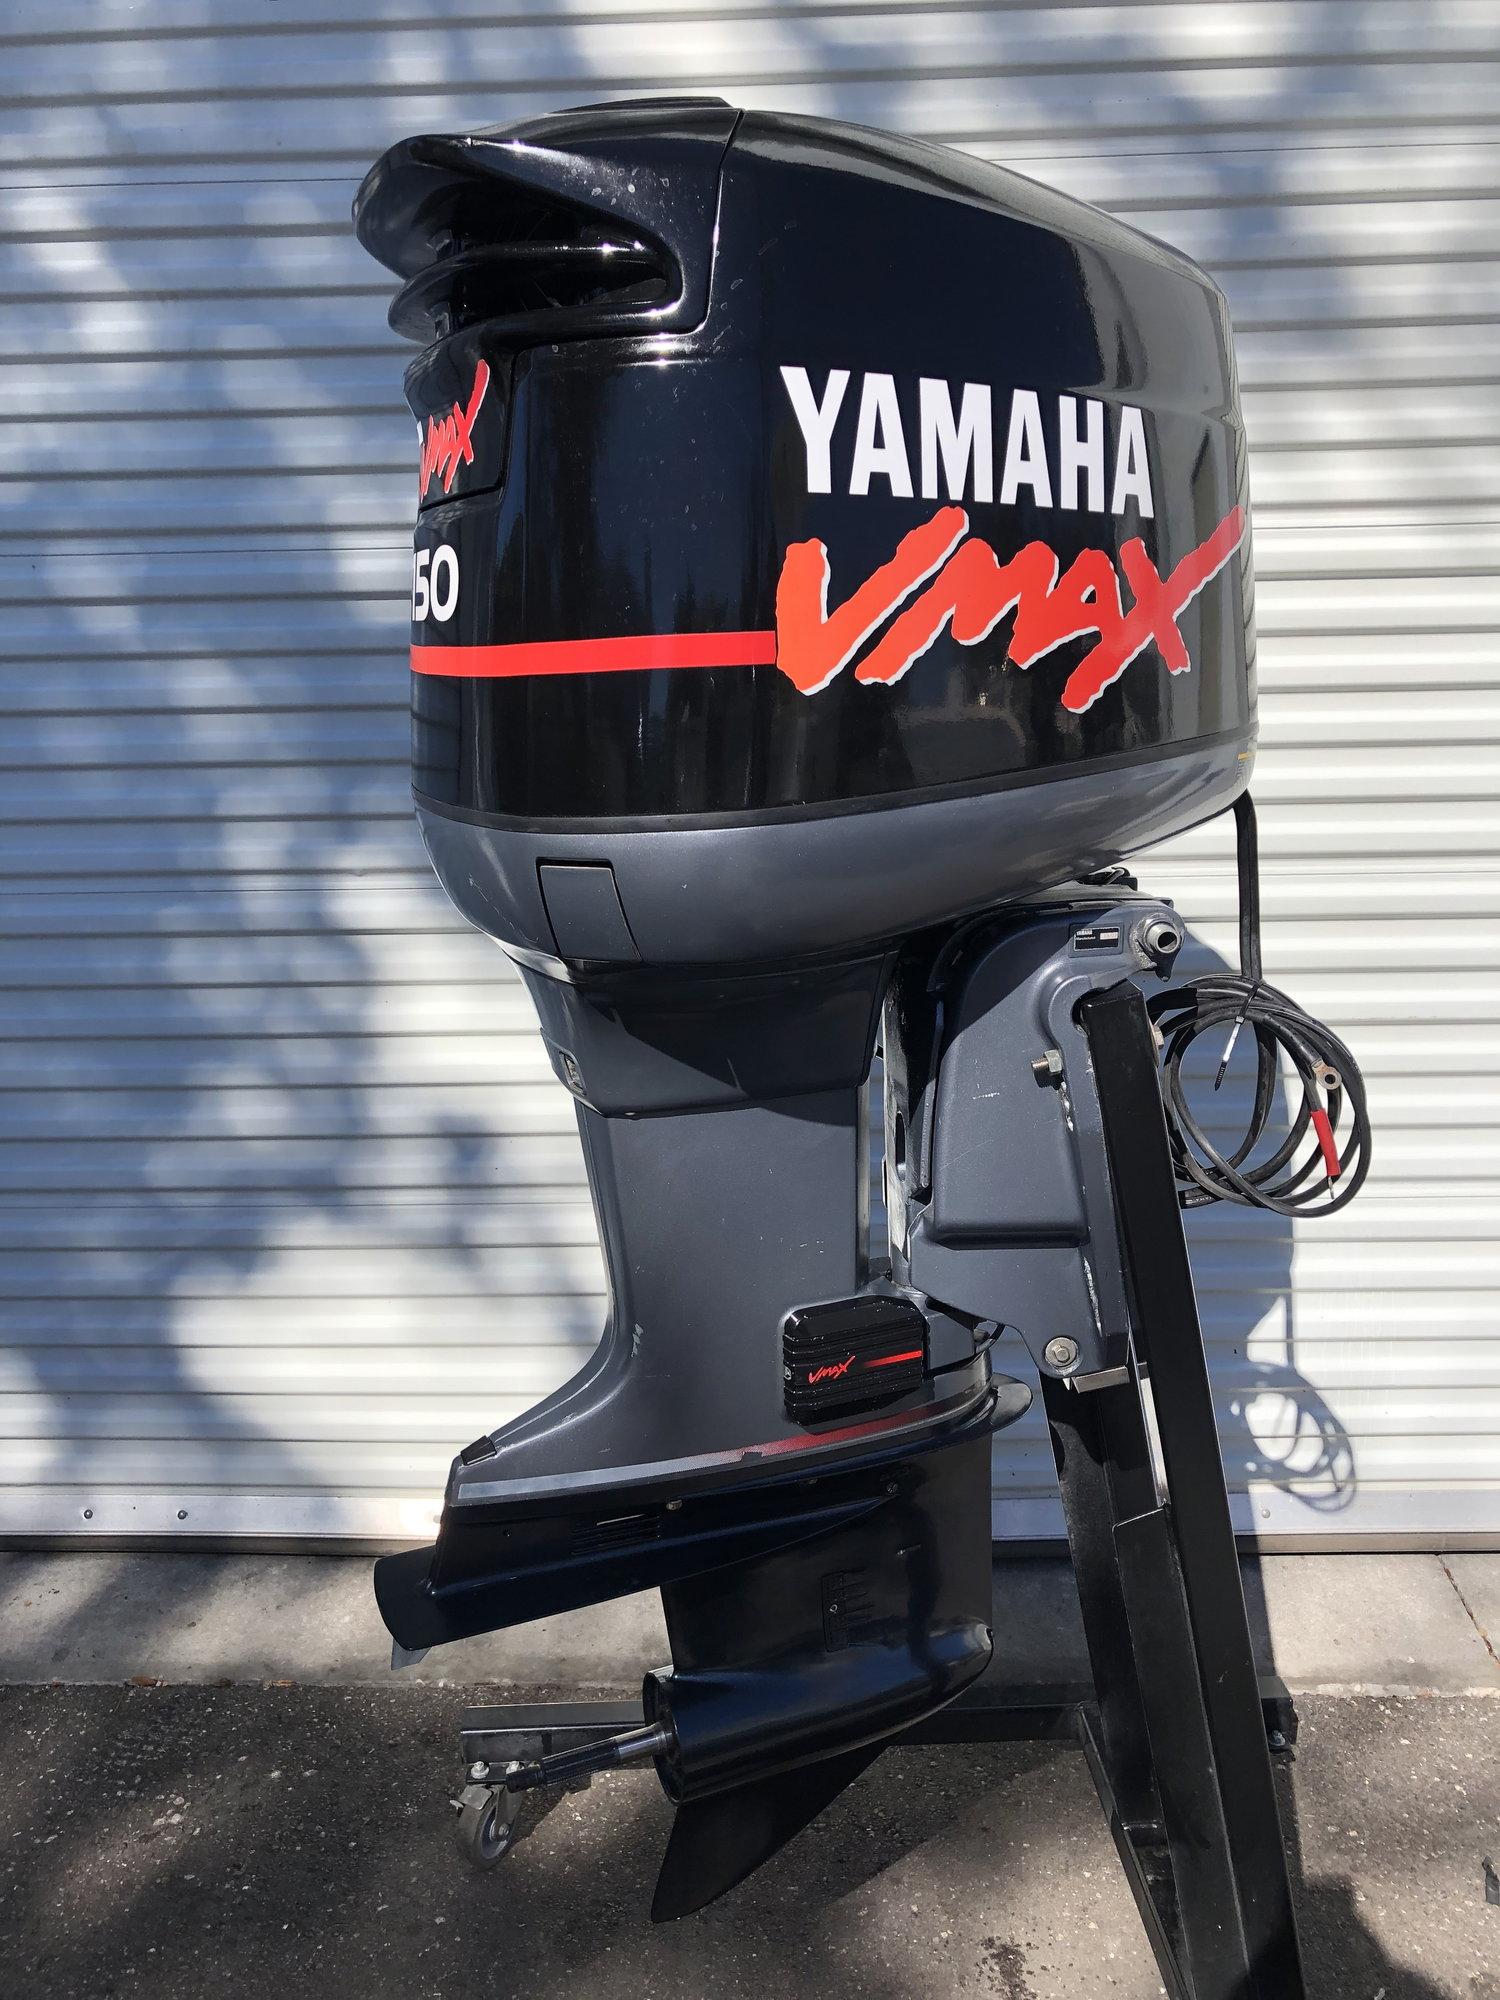 2003 150 Yamaha Vmax Outboard - The Hull Truth